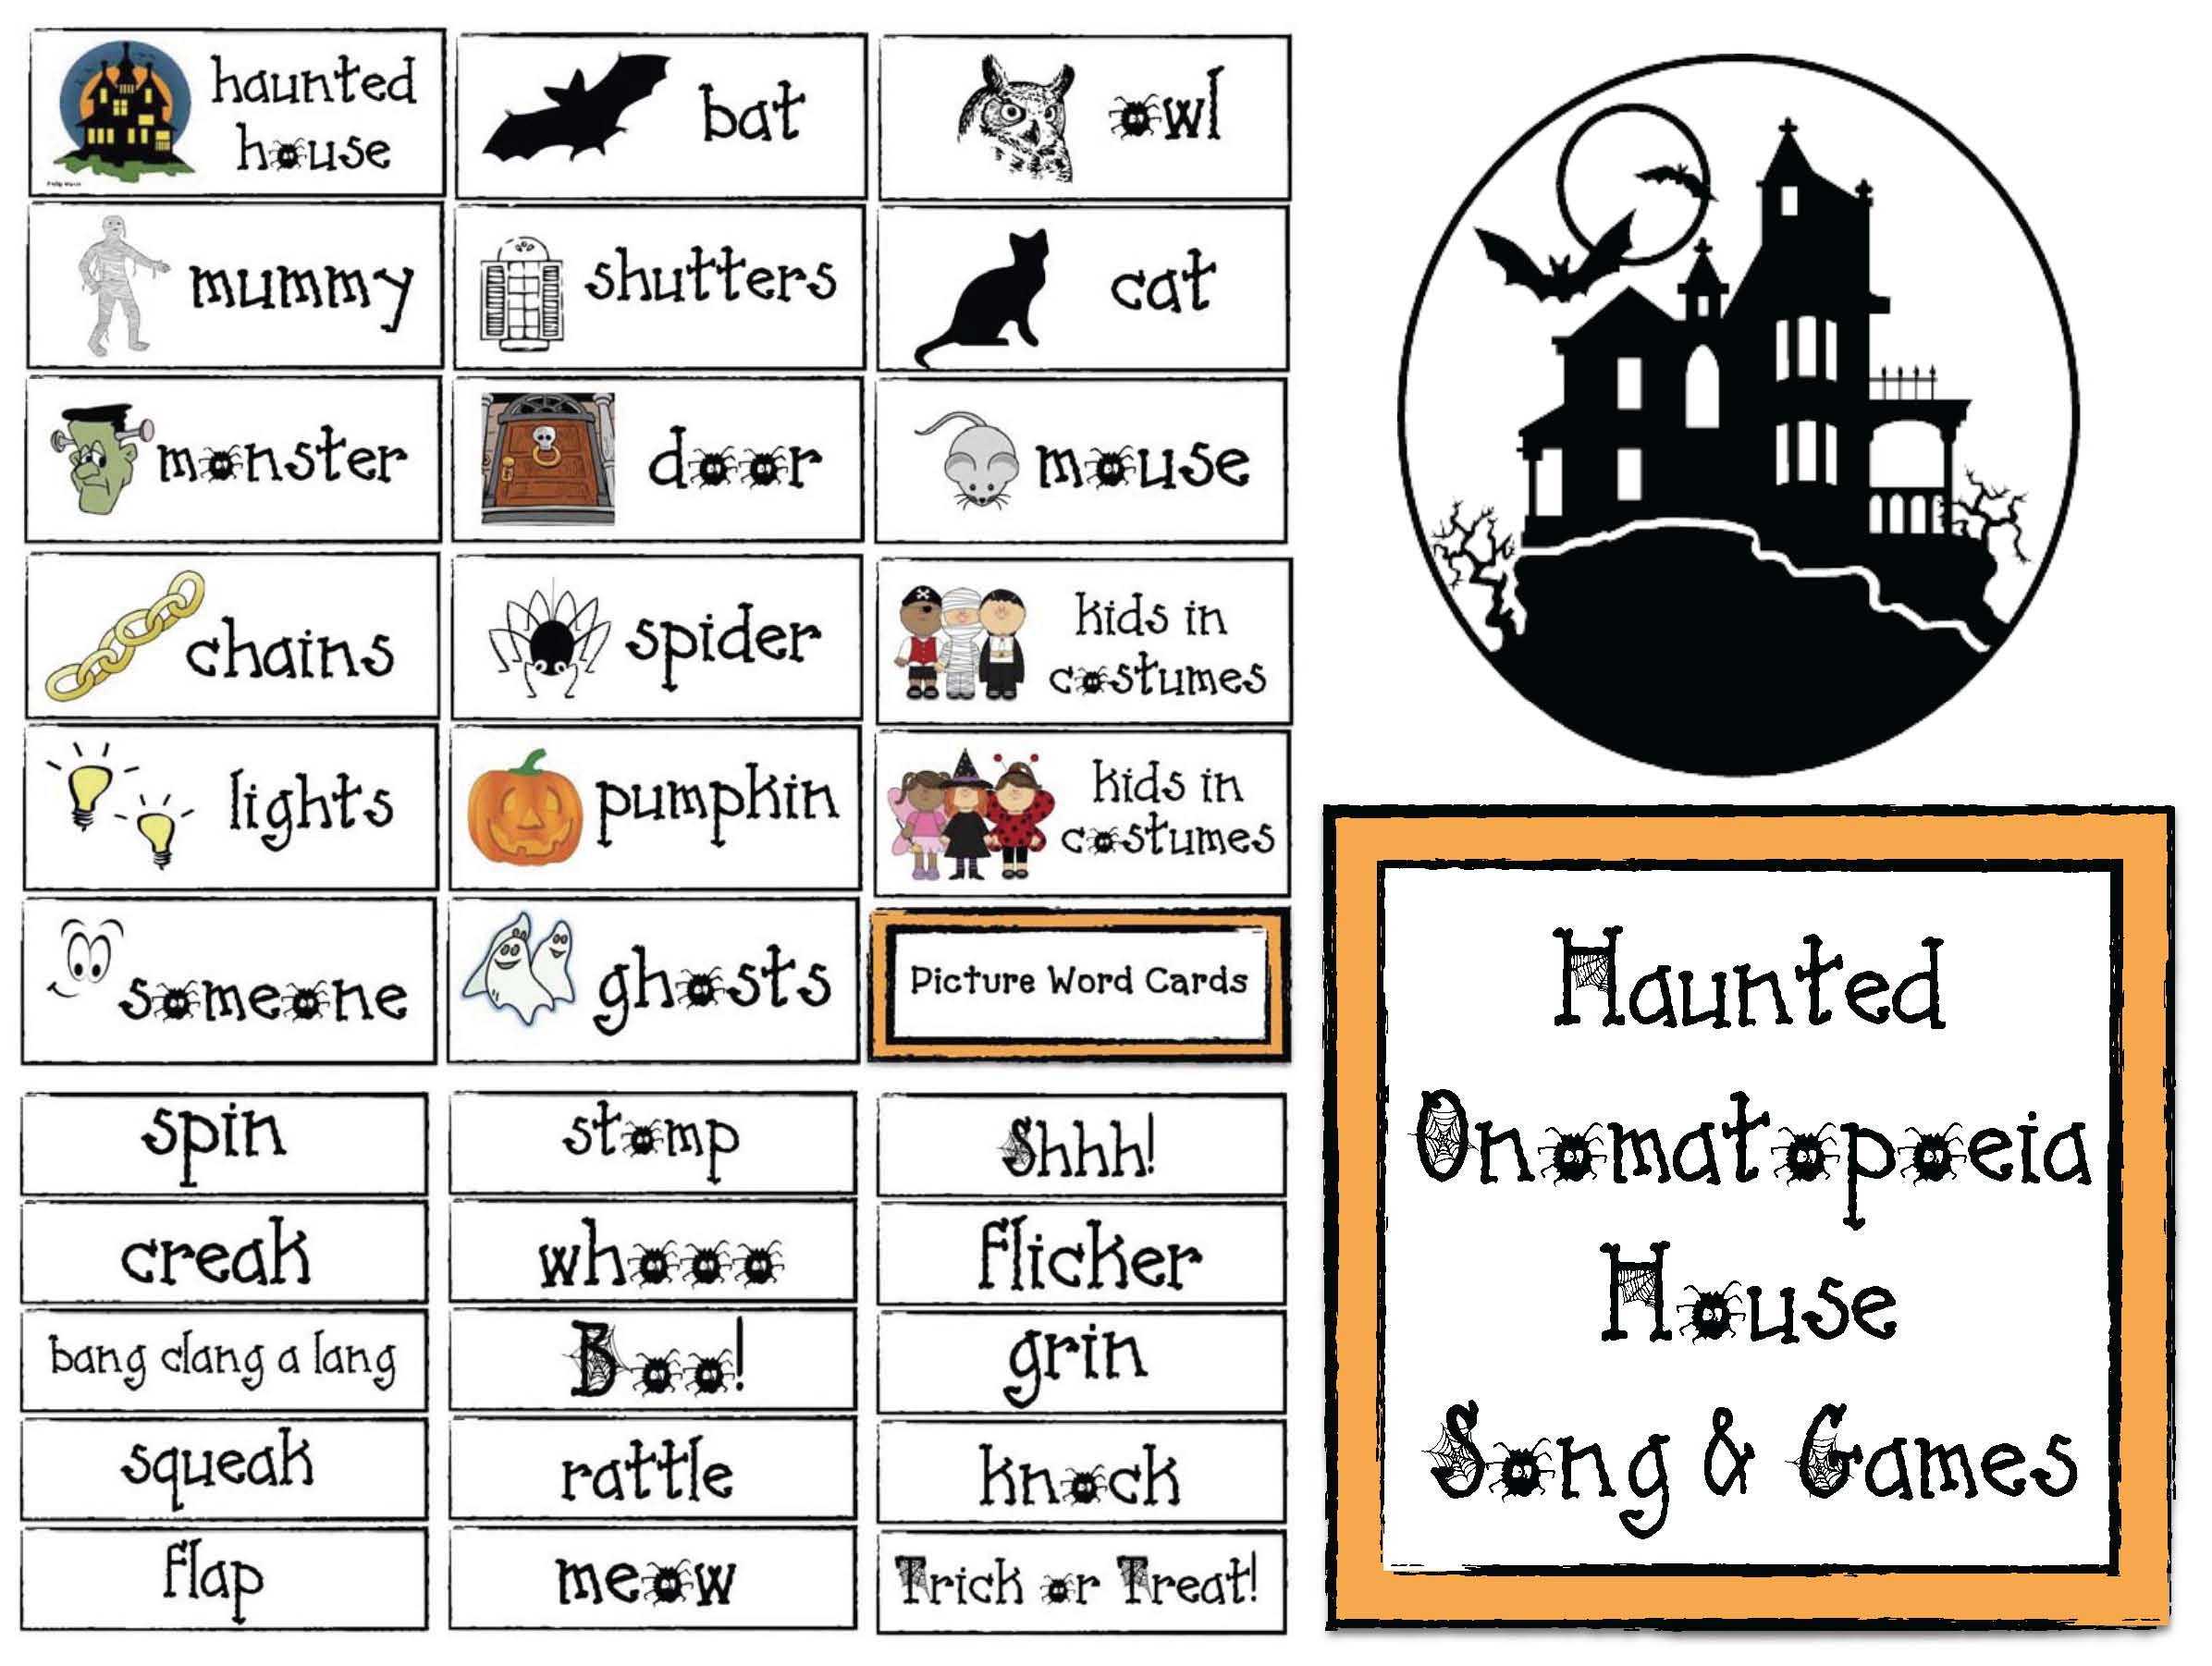 haunted house activities, haunted house activities for kids, spooky house activities, onomatopoeia activities, halloween activities, halloween games, ideas for kids halloween party, halloween school party activities, halloween games for kids, halloween songs, halloween songs for kids